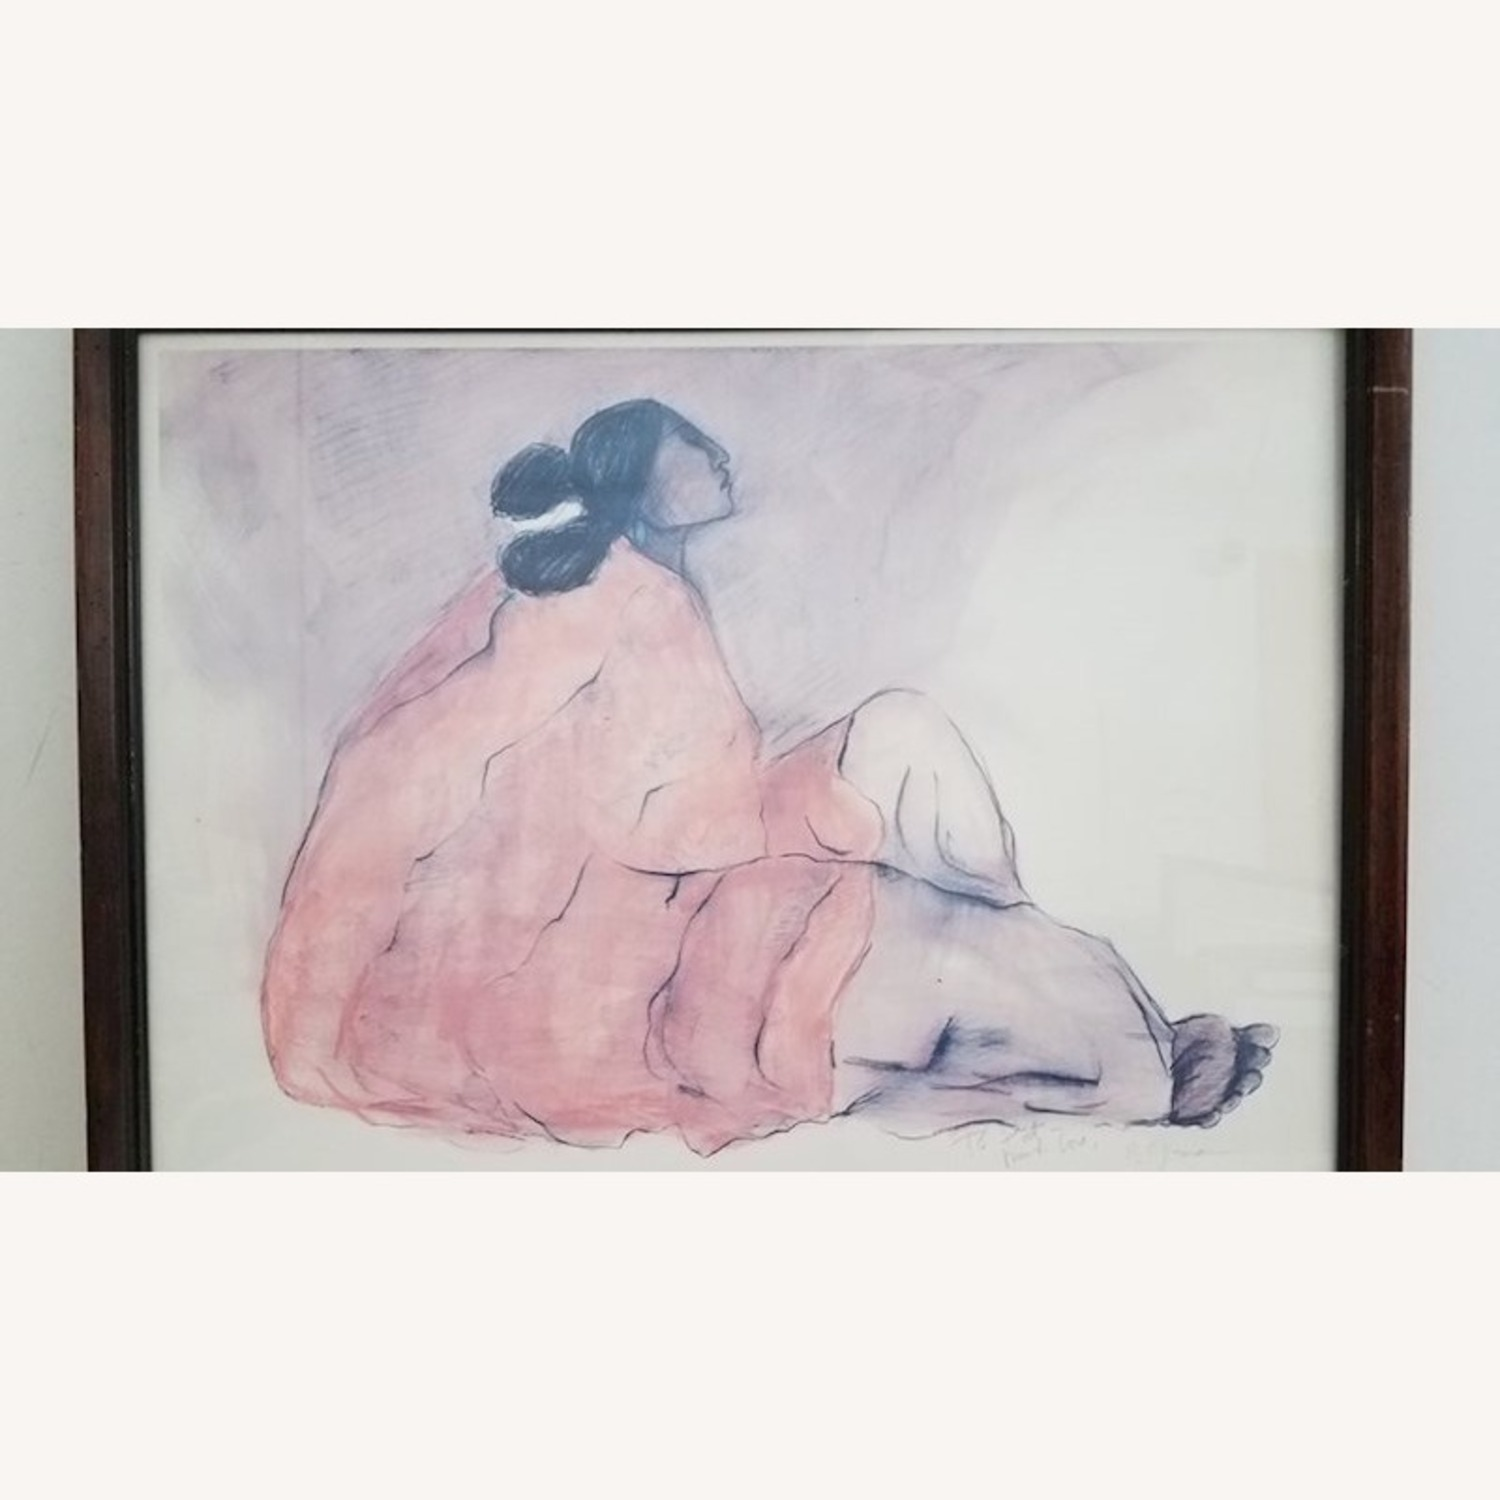 RC Gorman Signed 1978 Lithograph - image-4